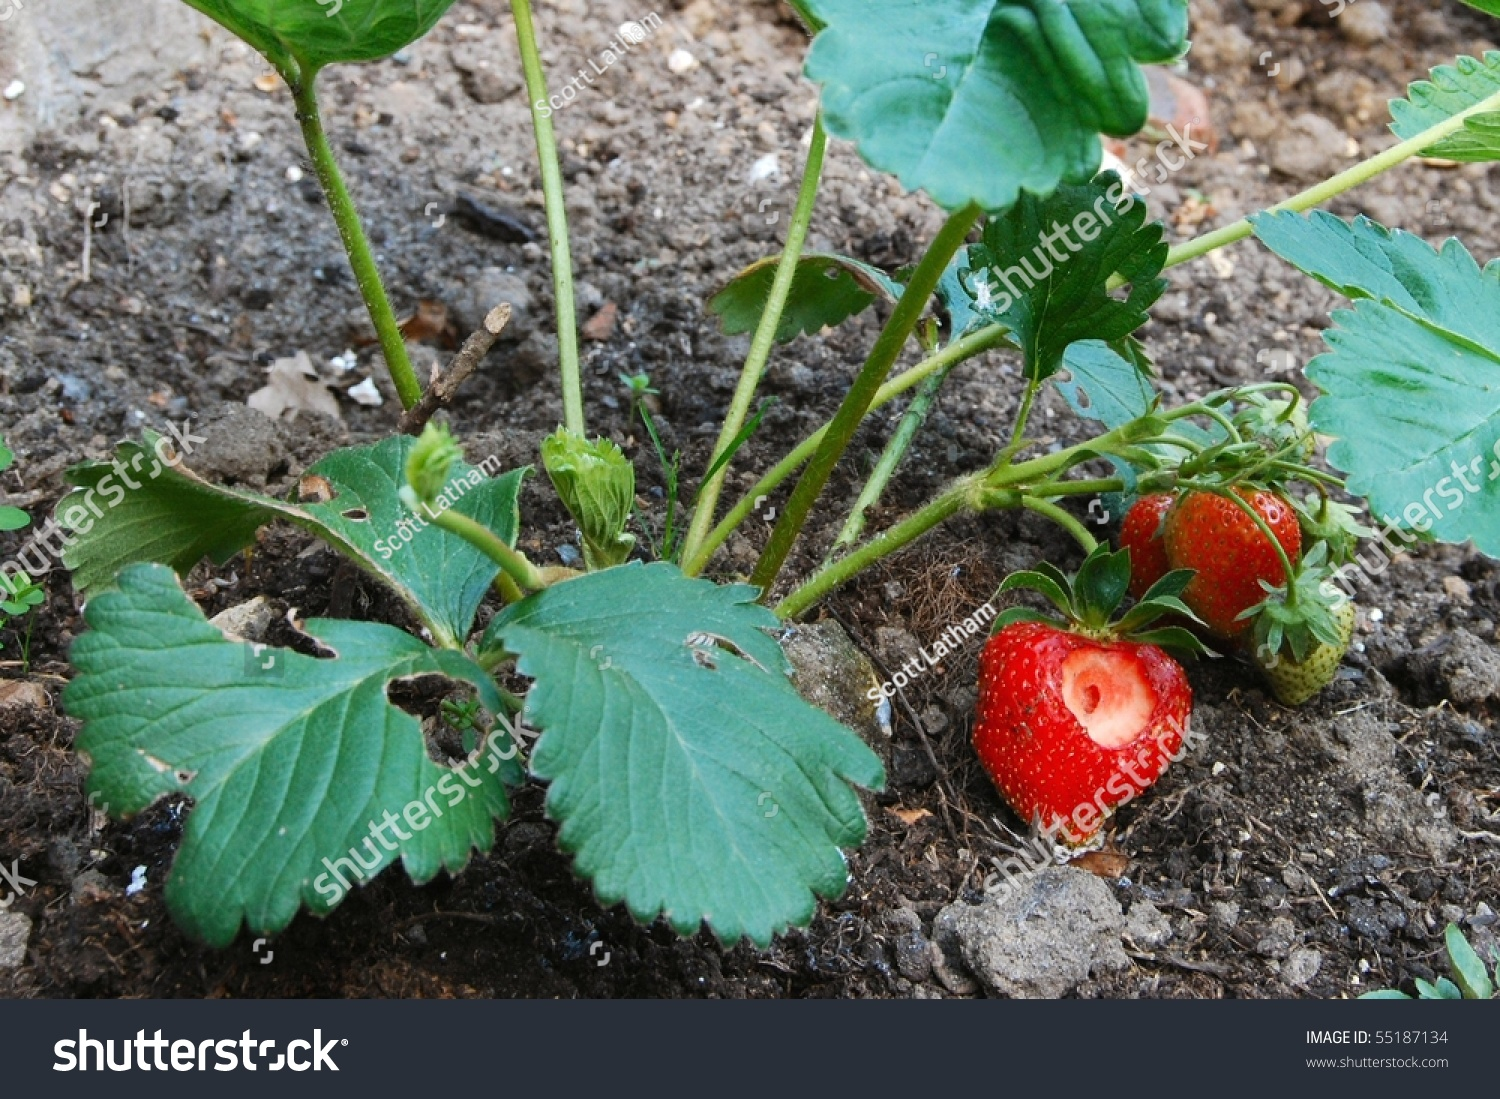 how to get more strawberries from plant